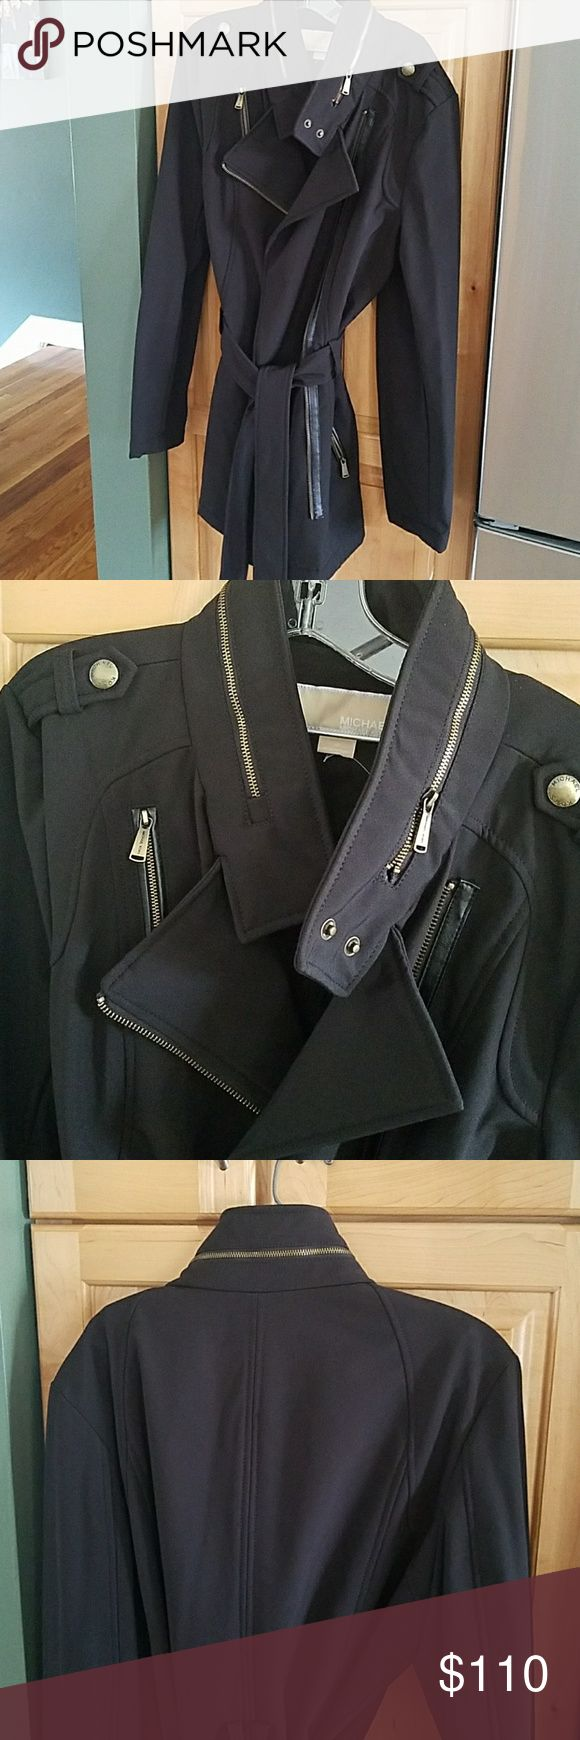 NWT Michael kors water resistant jacket NWT womens Michael kors jacket size medium.  All reasonable offers considered.  Thanks for looking!!  ???? MICHAEL Michael Kors Jackets & Coats Trench Coats